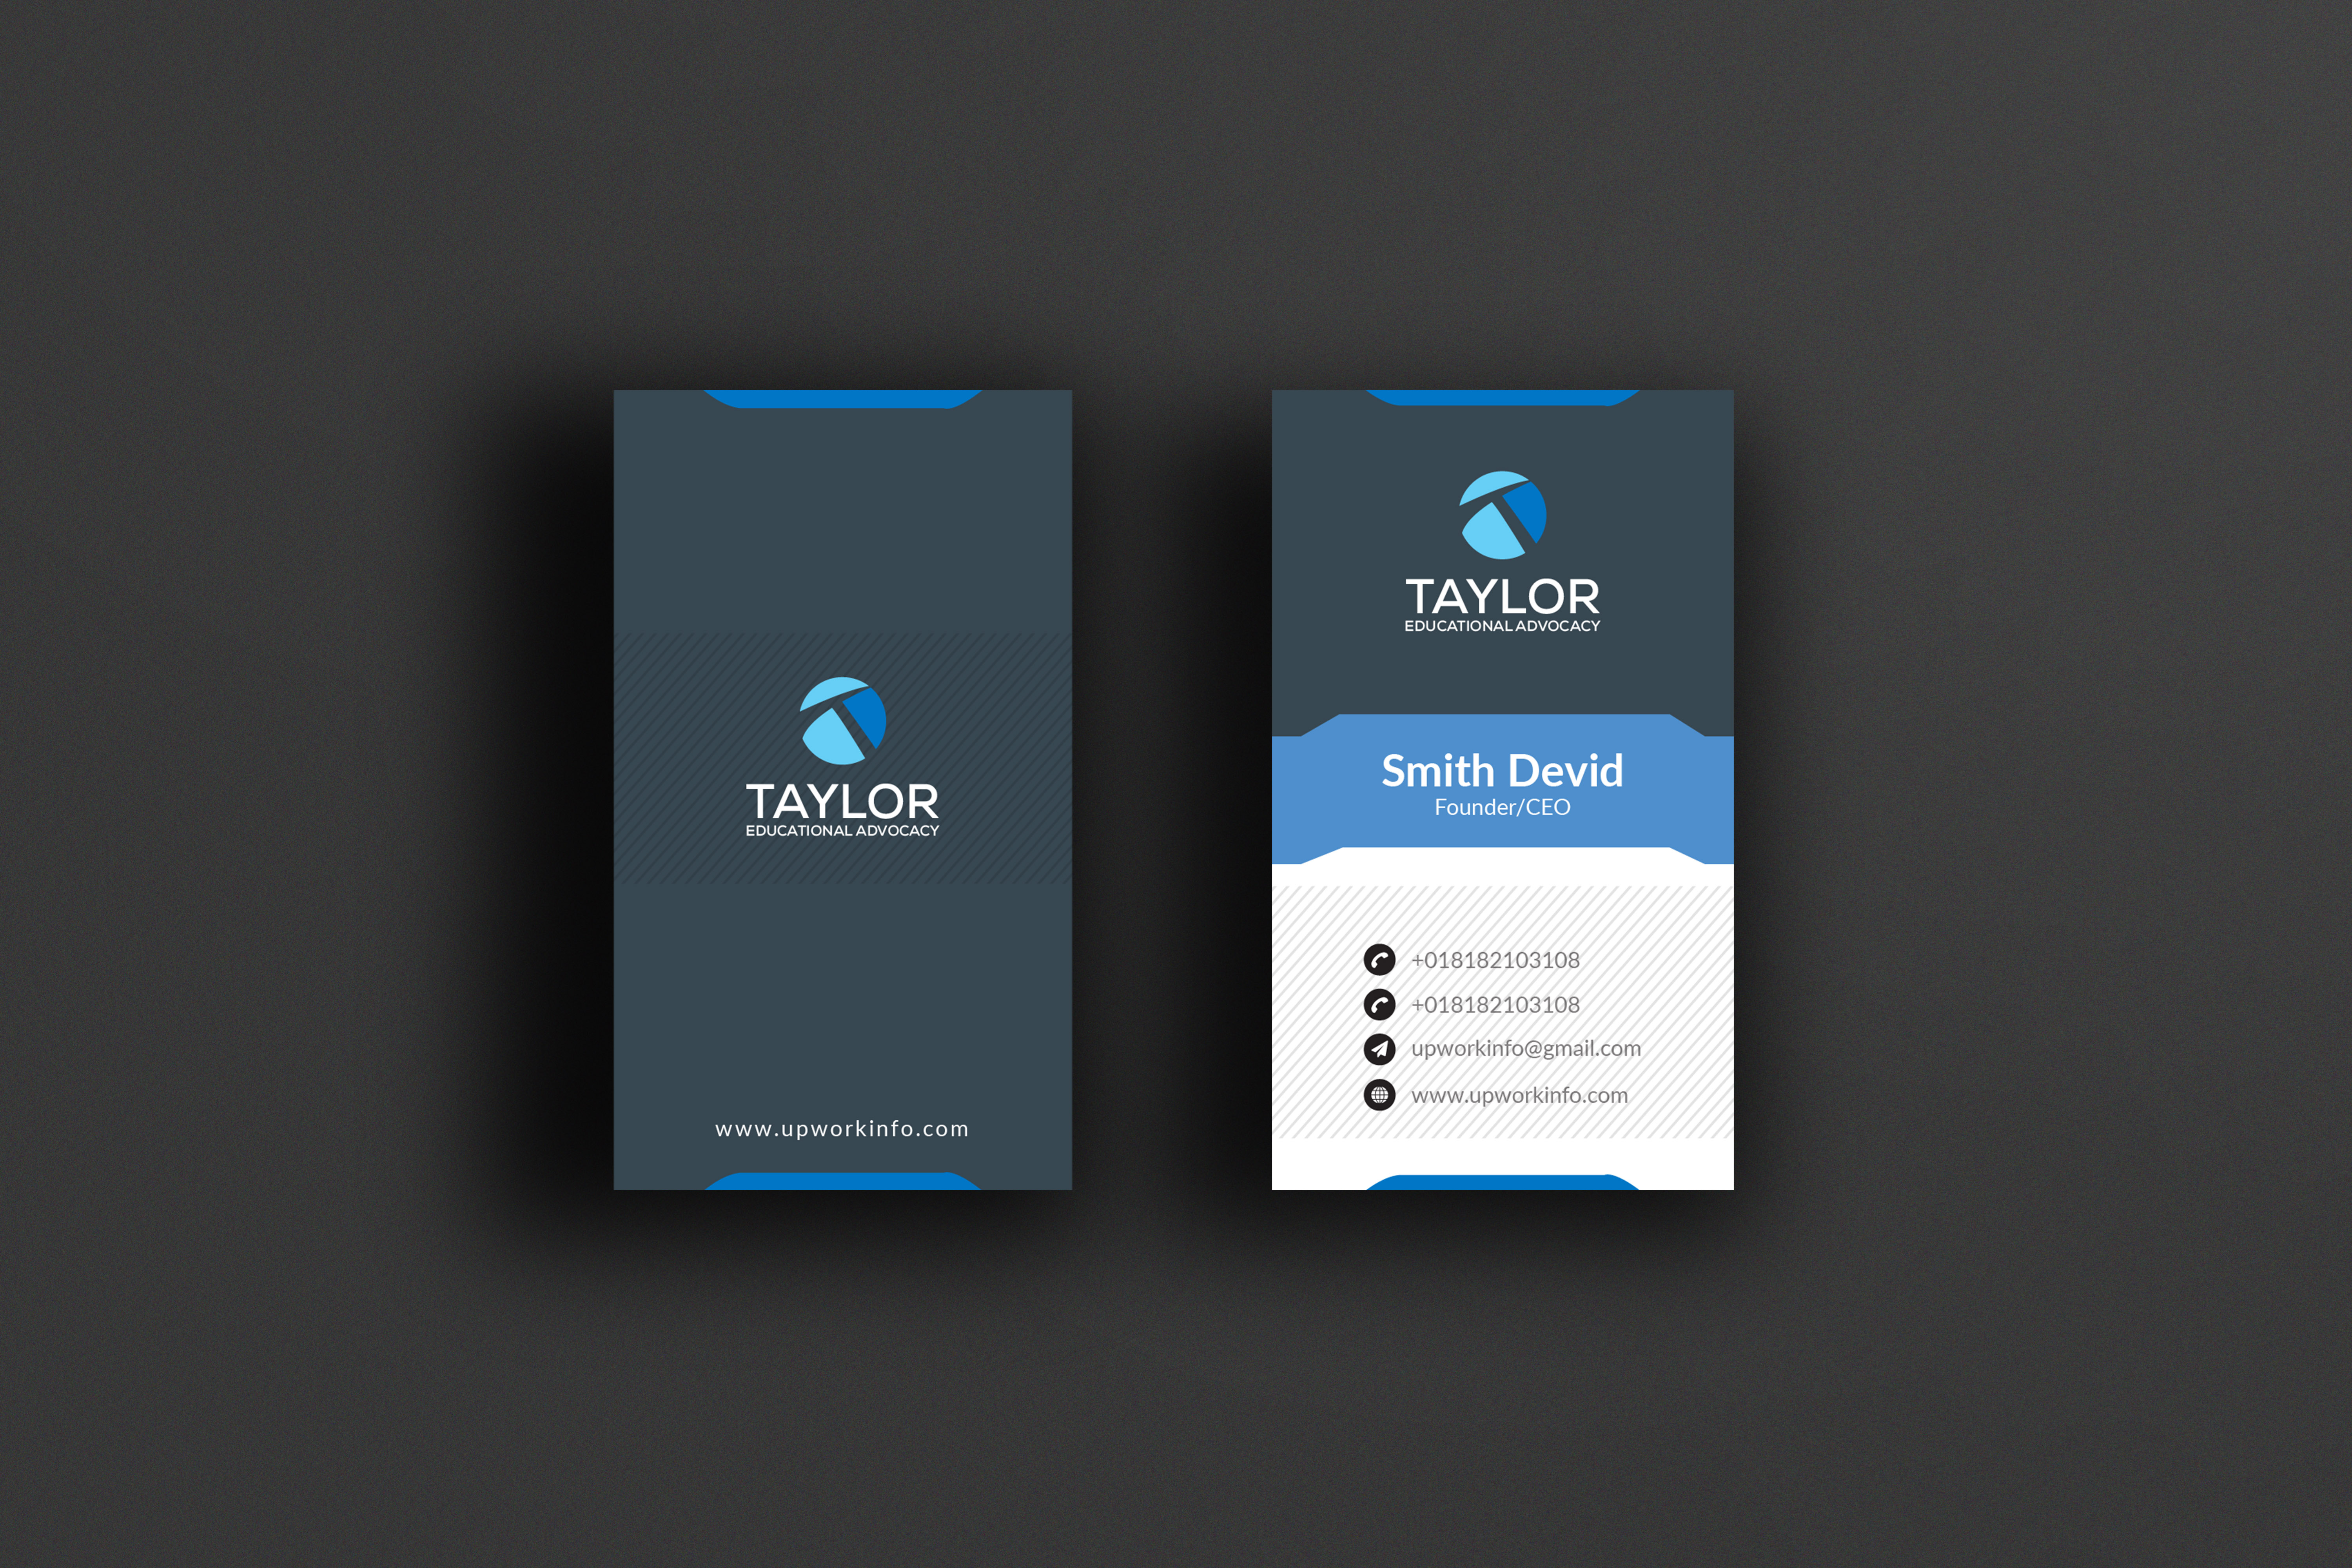 I will do professional business card design, letterhead, and stationery